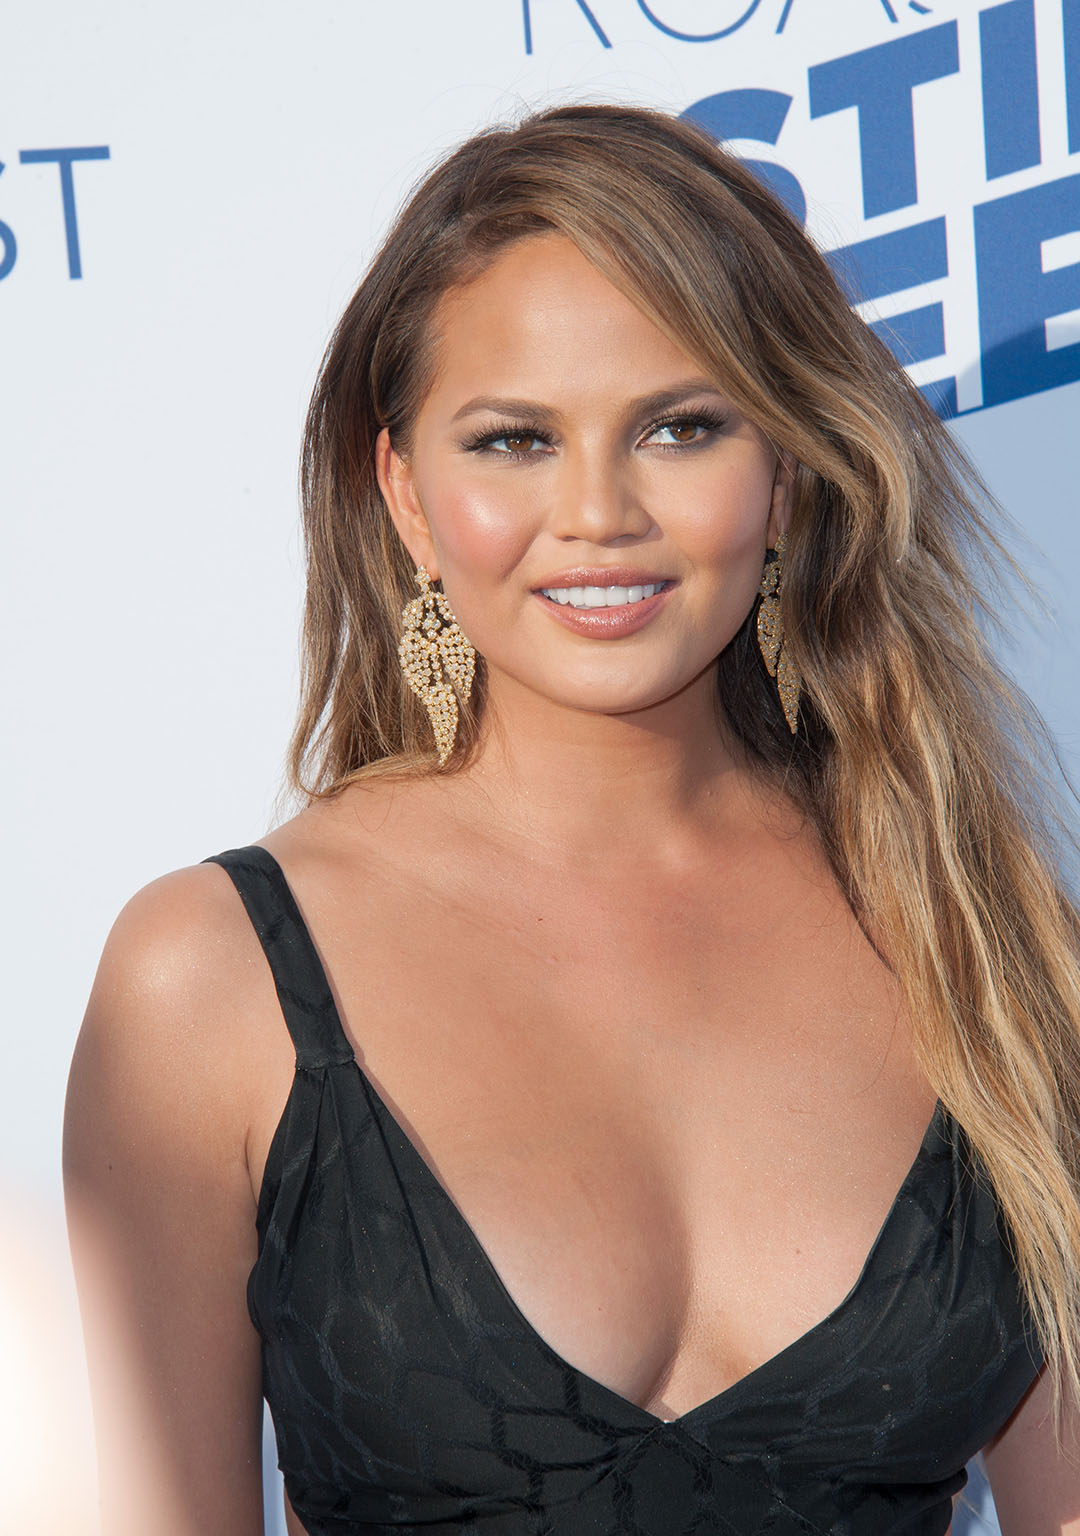 Chrissy Teigen Black Dress On Red Carpet